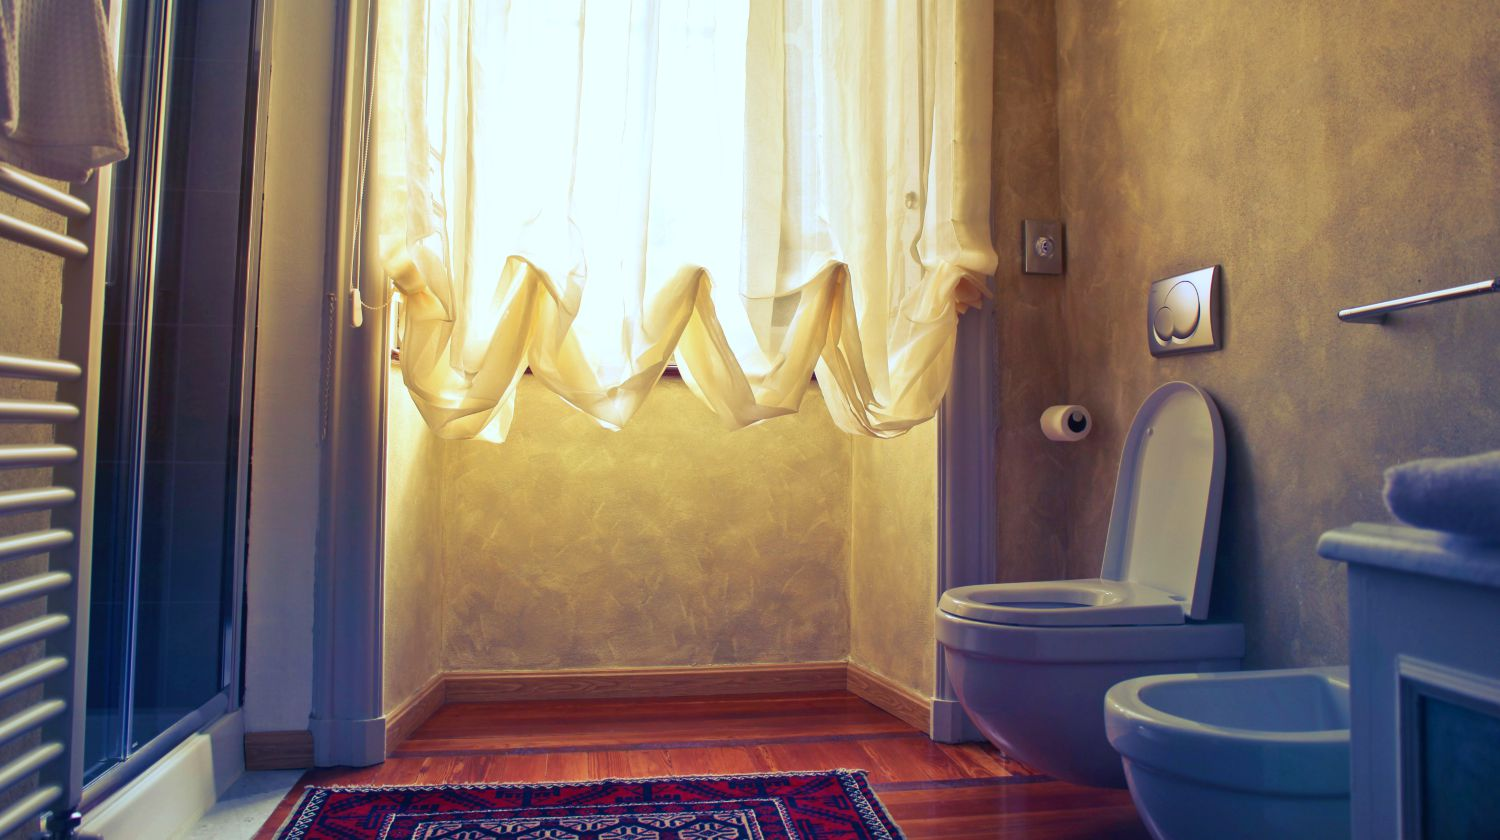 22 Awesome Bathroom Decorating Ideas On A Budget Diy Projects